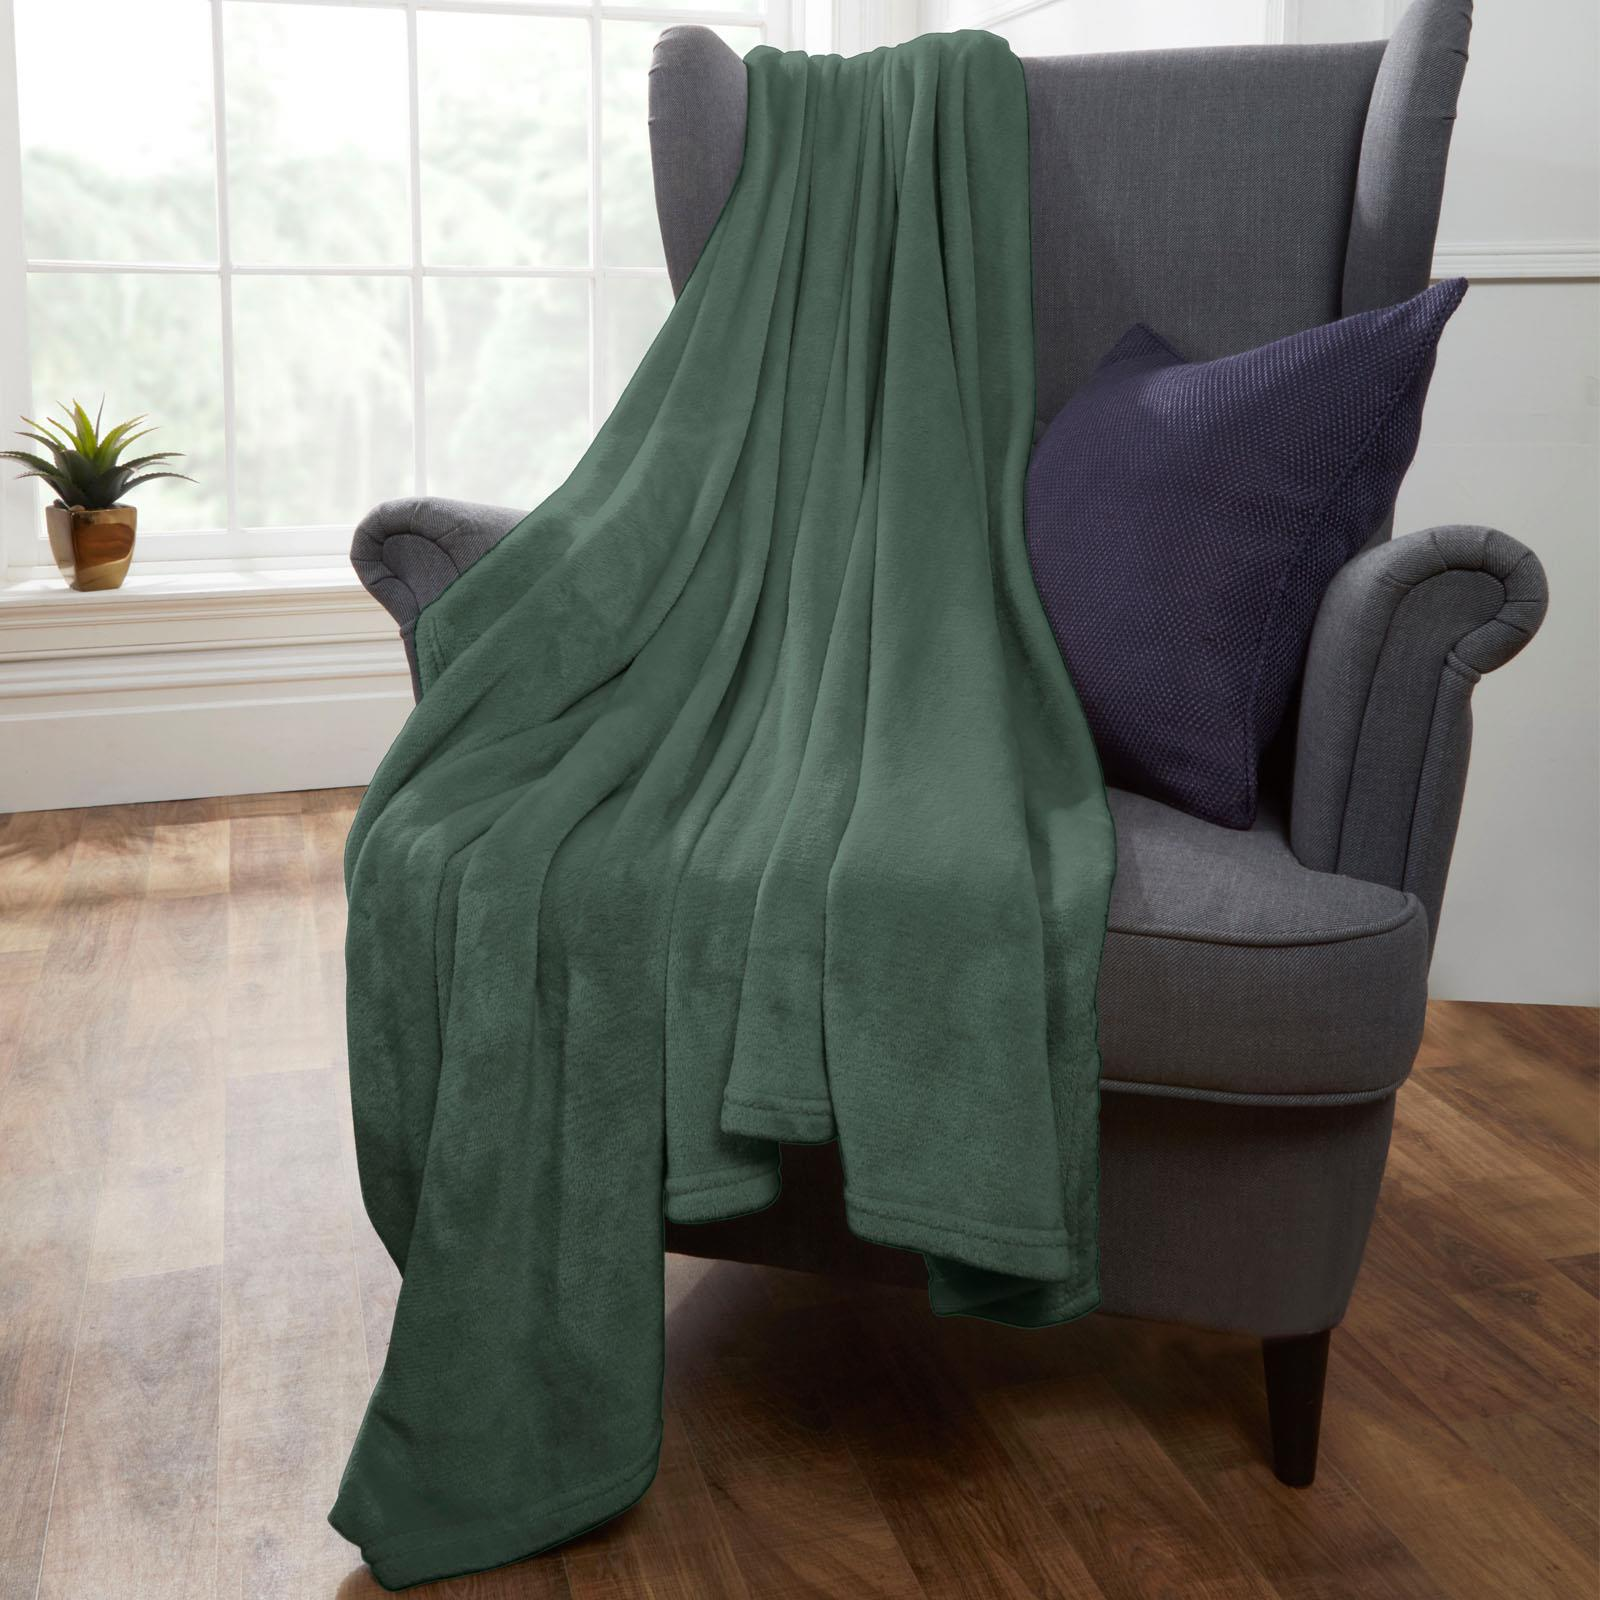 Brentfords-Large-Flannel-Fleece-Bed-Blanket-Warm-Throw-Over-Ultra-Soft-Bed-Sofa thumbnail 12